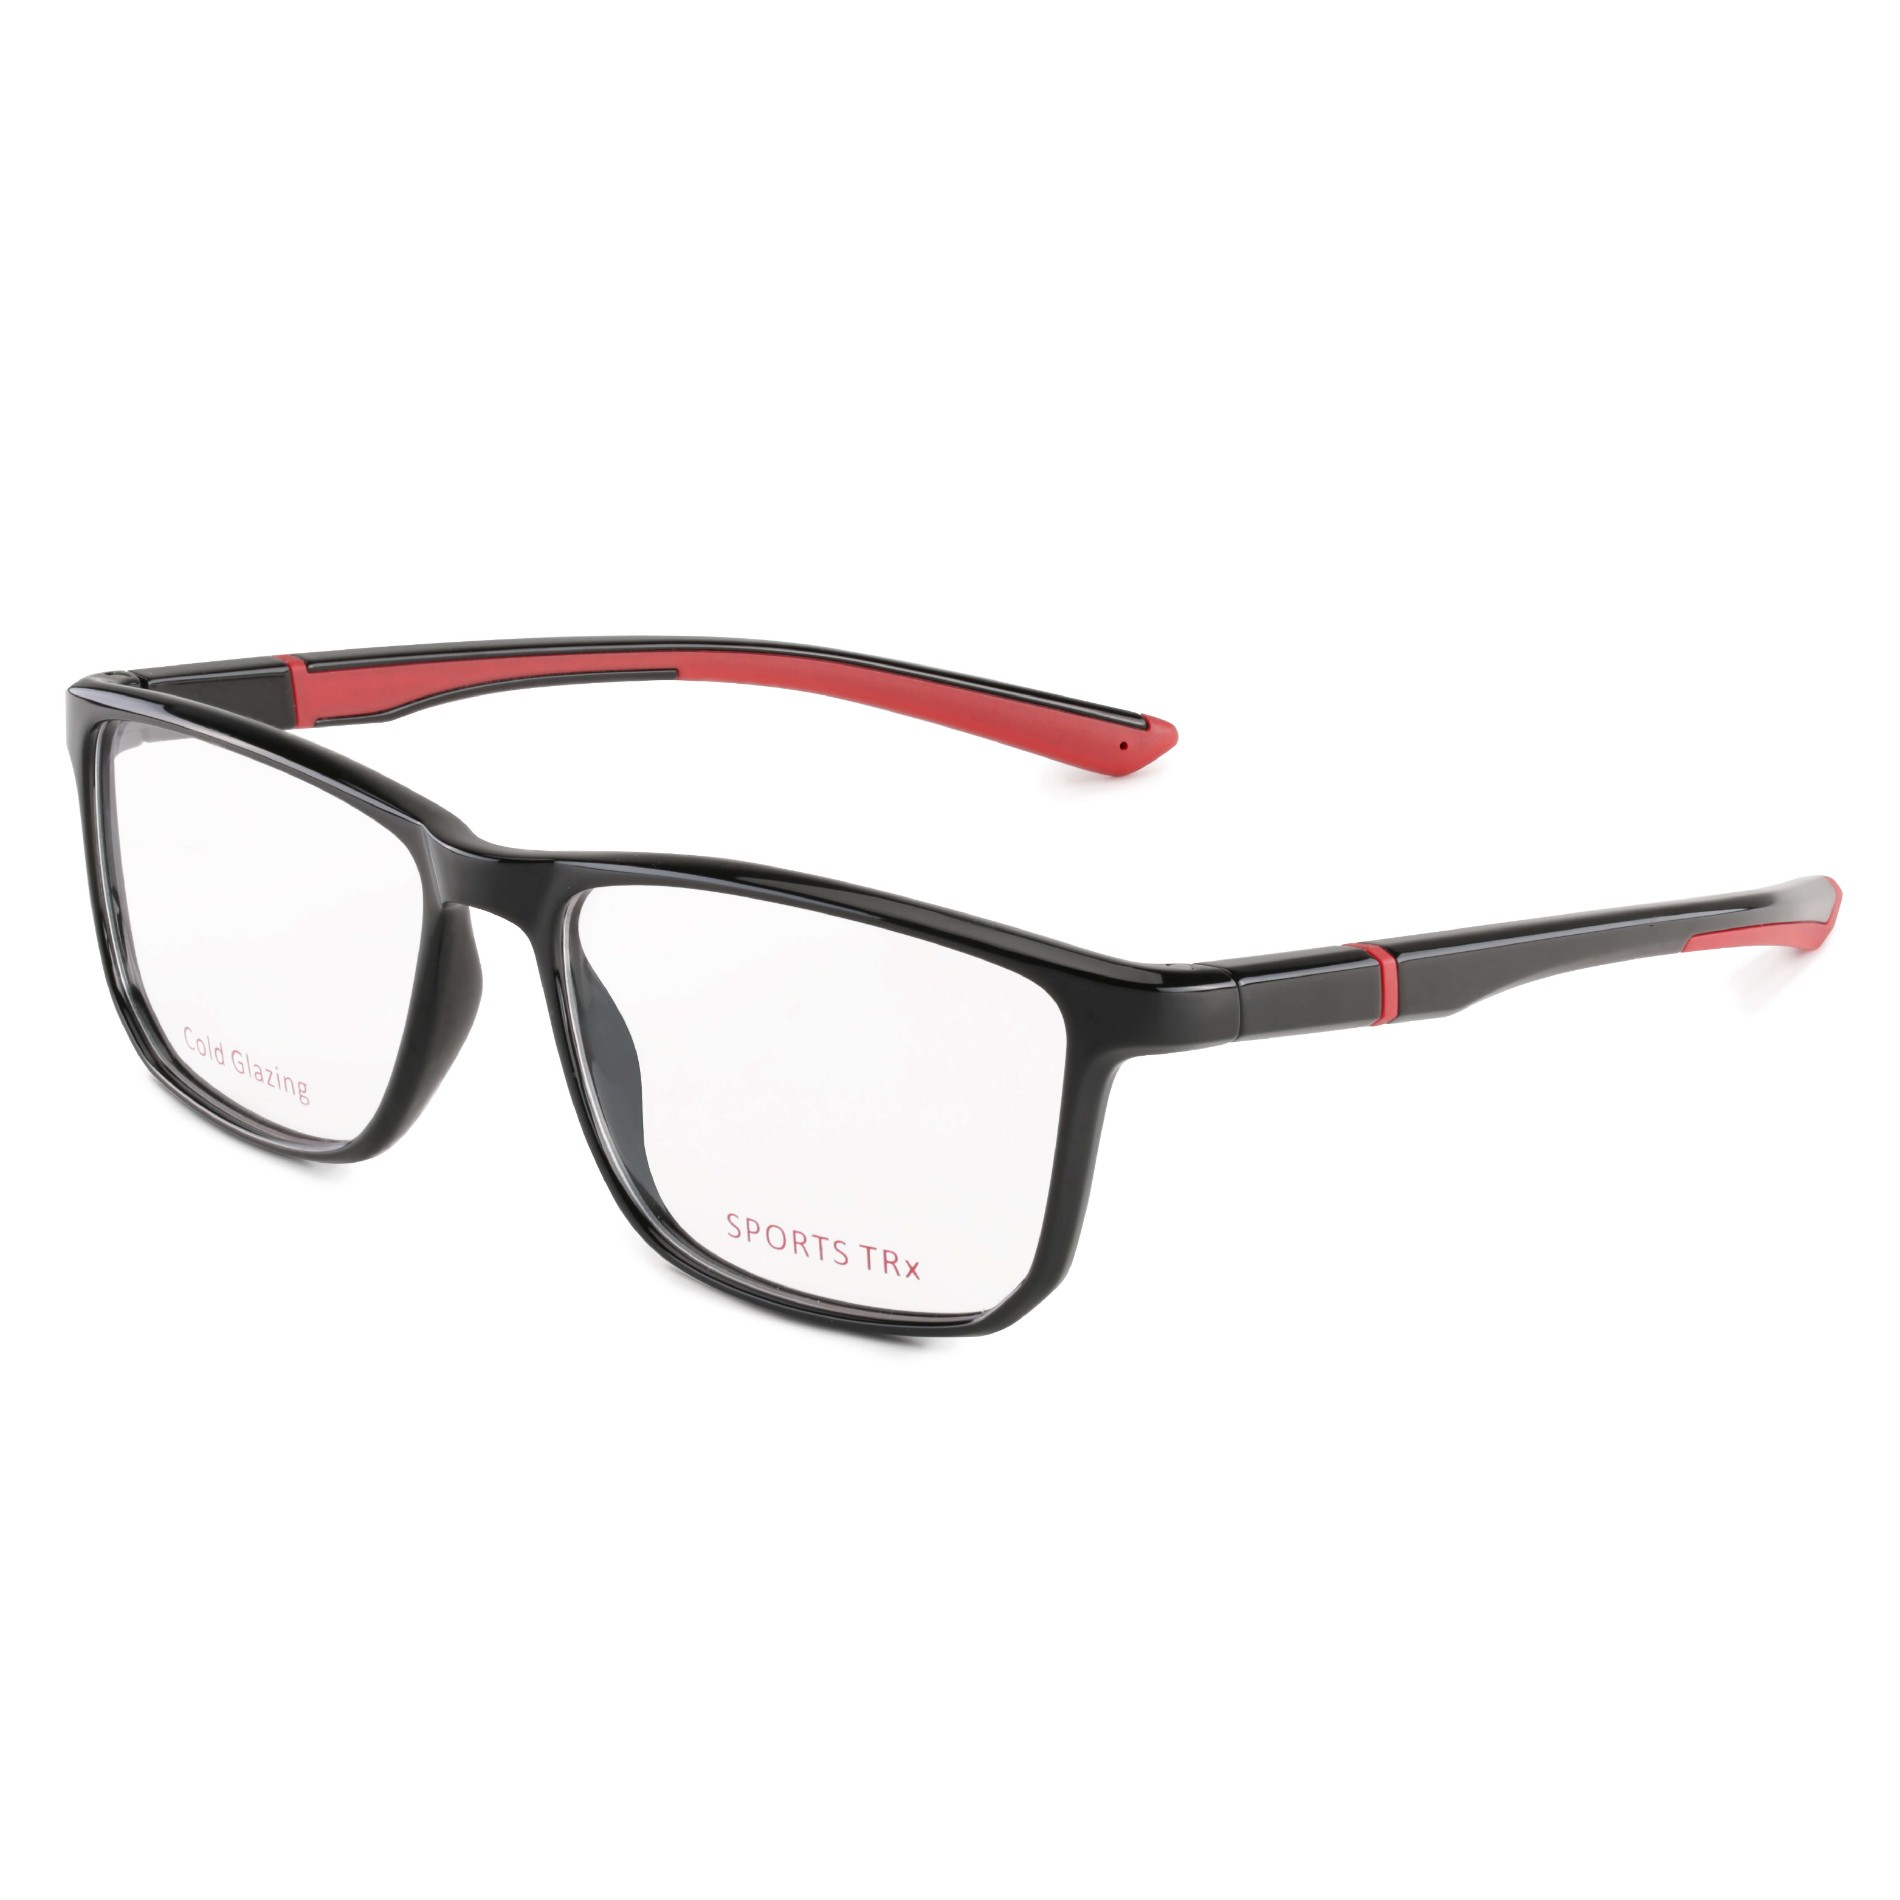 Sports TR90 Glasses Light Weight Outdoor Prescription Eyeglasses Frames with Anti-Fog Face Shield Manufacturers, Sports TR90 Glasses Light Weight Outdoor Prescription Eyeglasses Frames with Anti-Fog Face Shield Factory, Supply Sports TR90 Glasses Light Weight Outdoor Prescription Eyeglasses Frames with Anti-Fog Face Shield